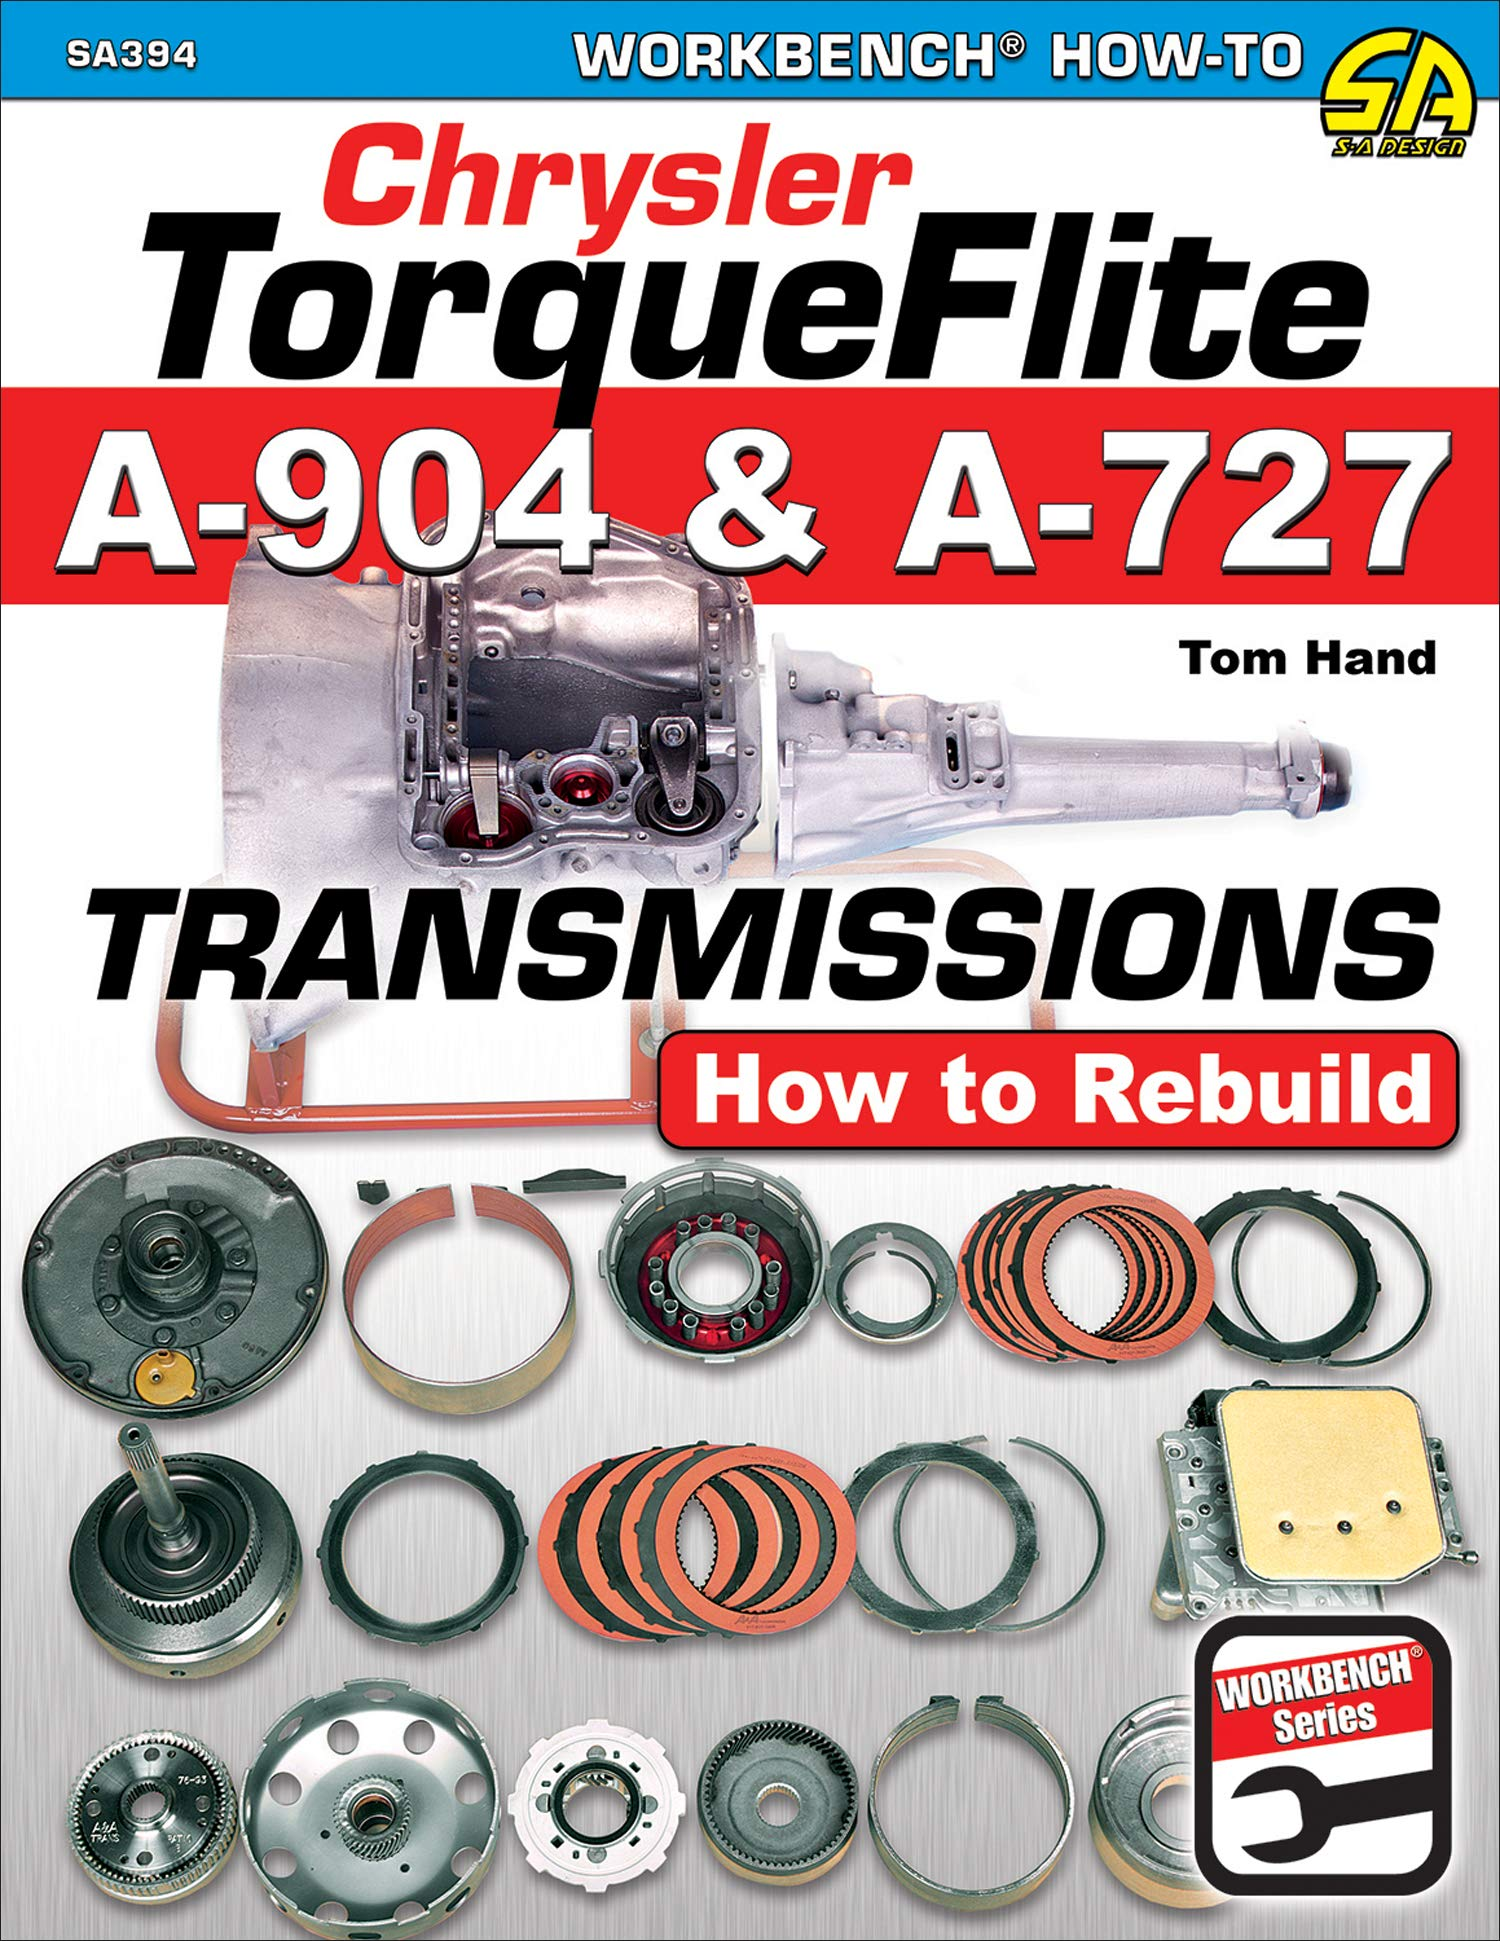 Download Chrysler Torqueflite A-904 & A-727 Transmissions: How To Rebuild 